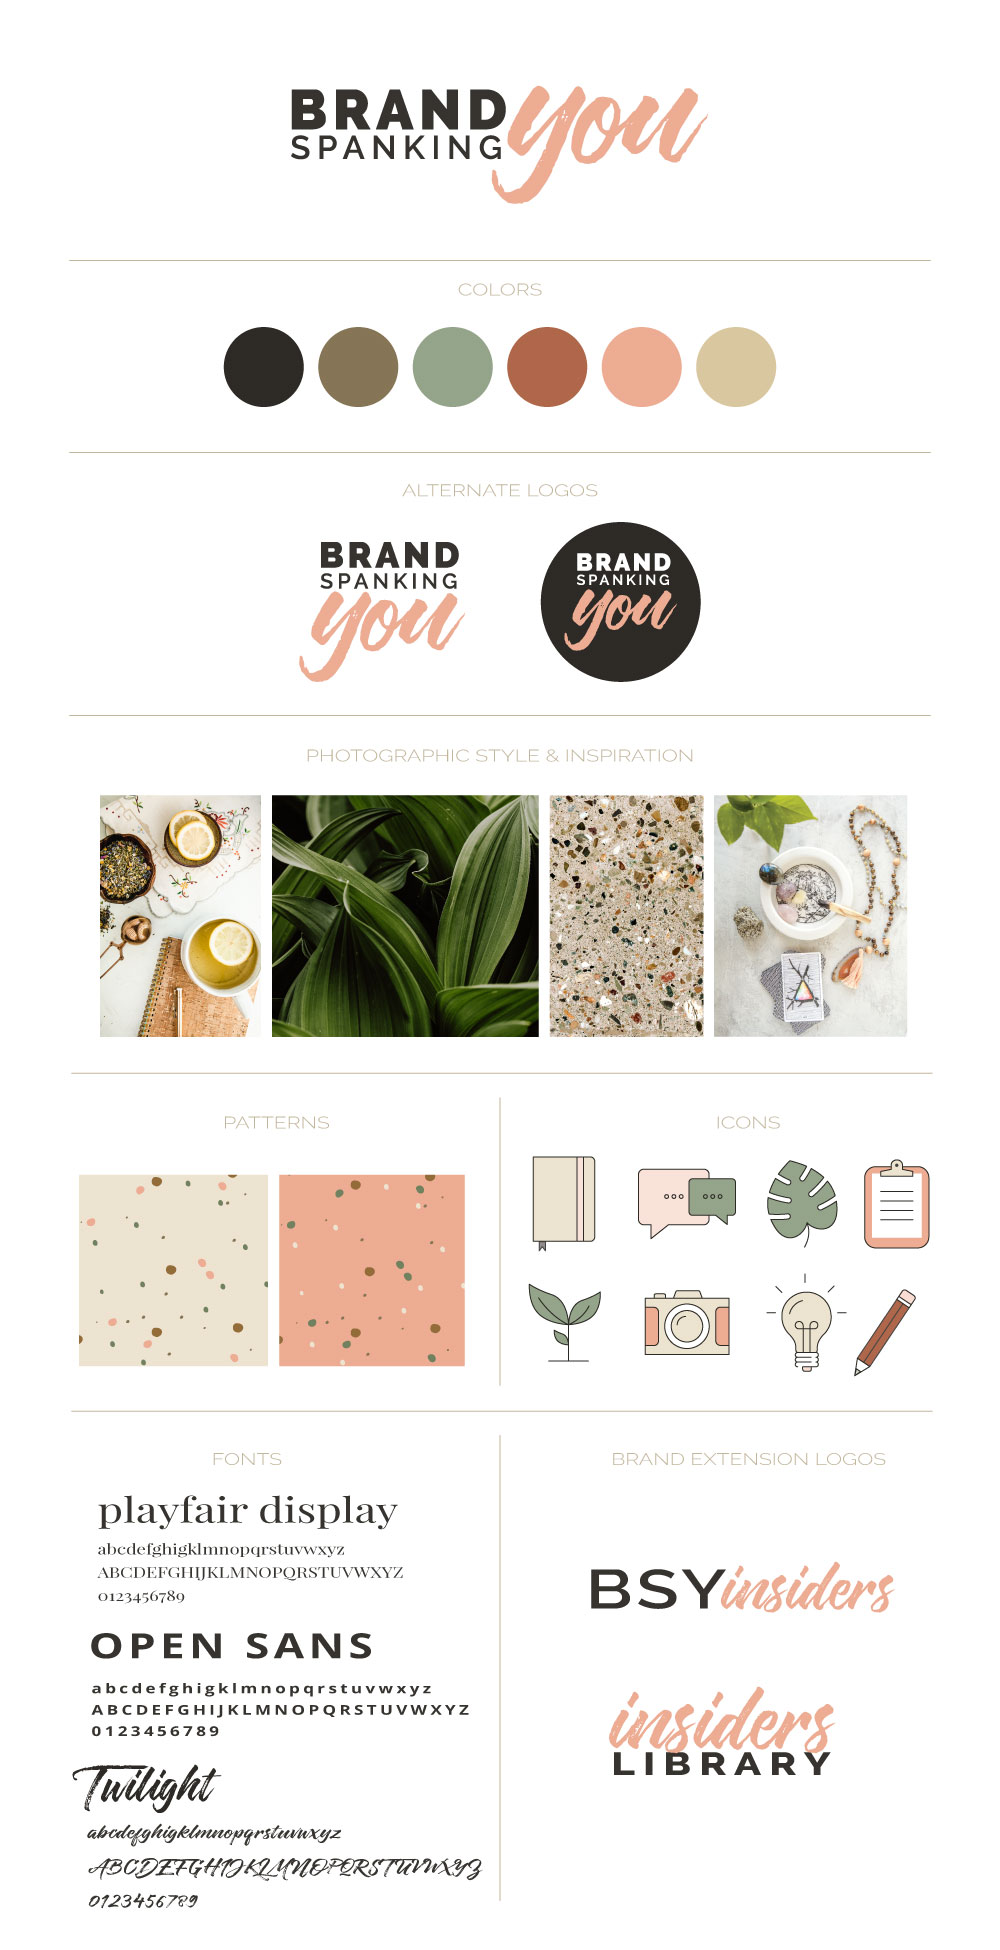 Brand Board for Brand Spanking You Visual Brand Identity